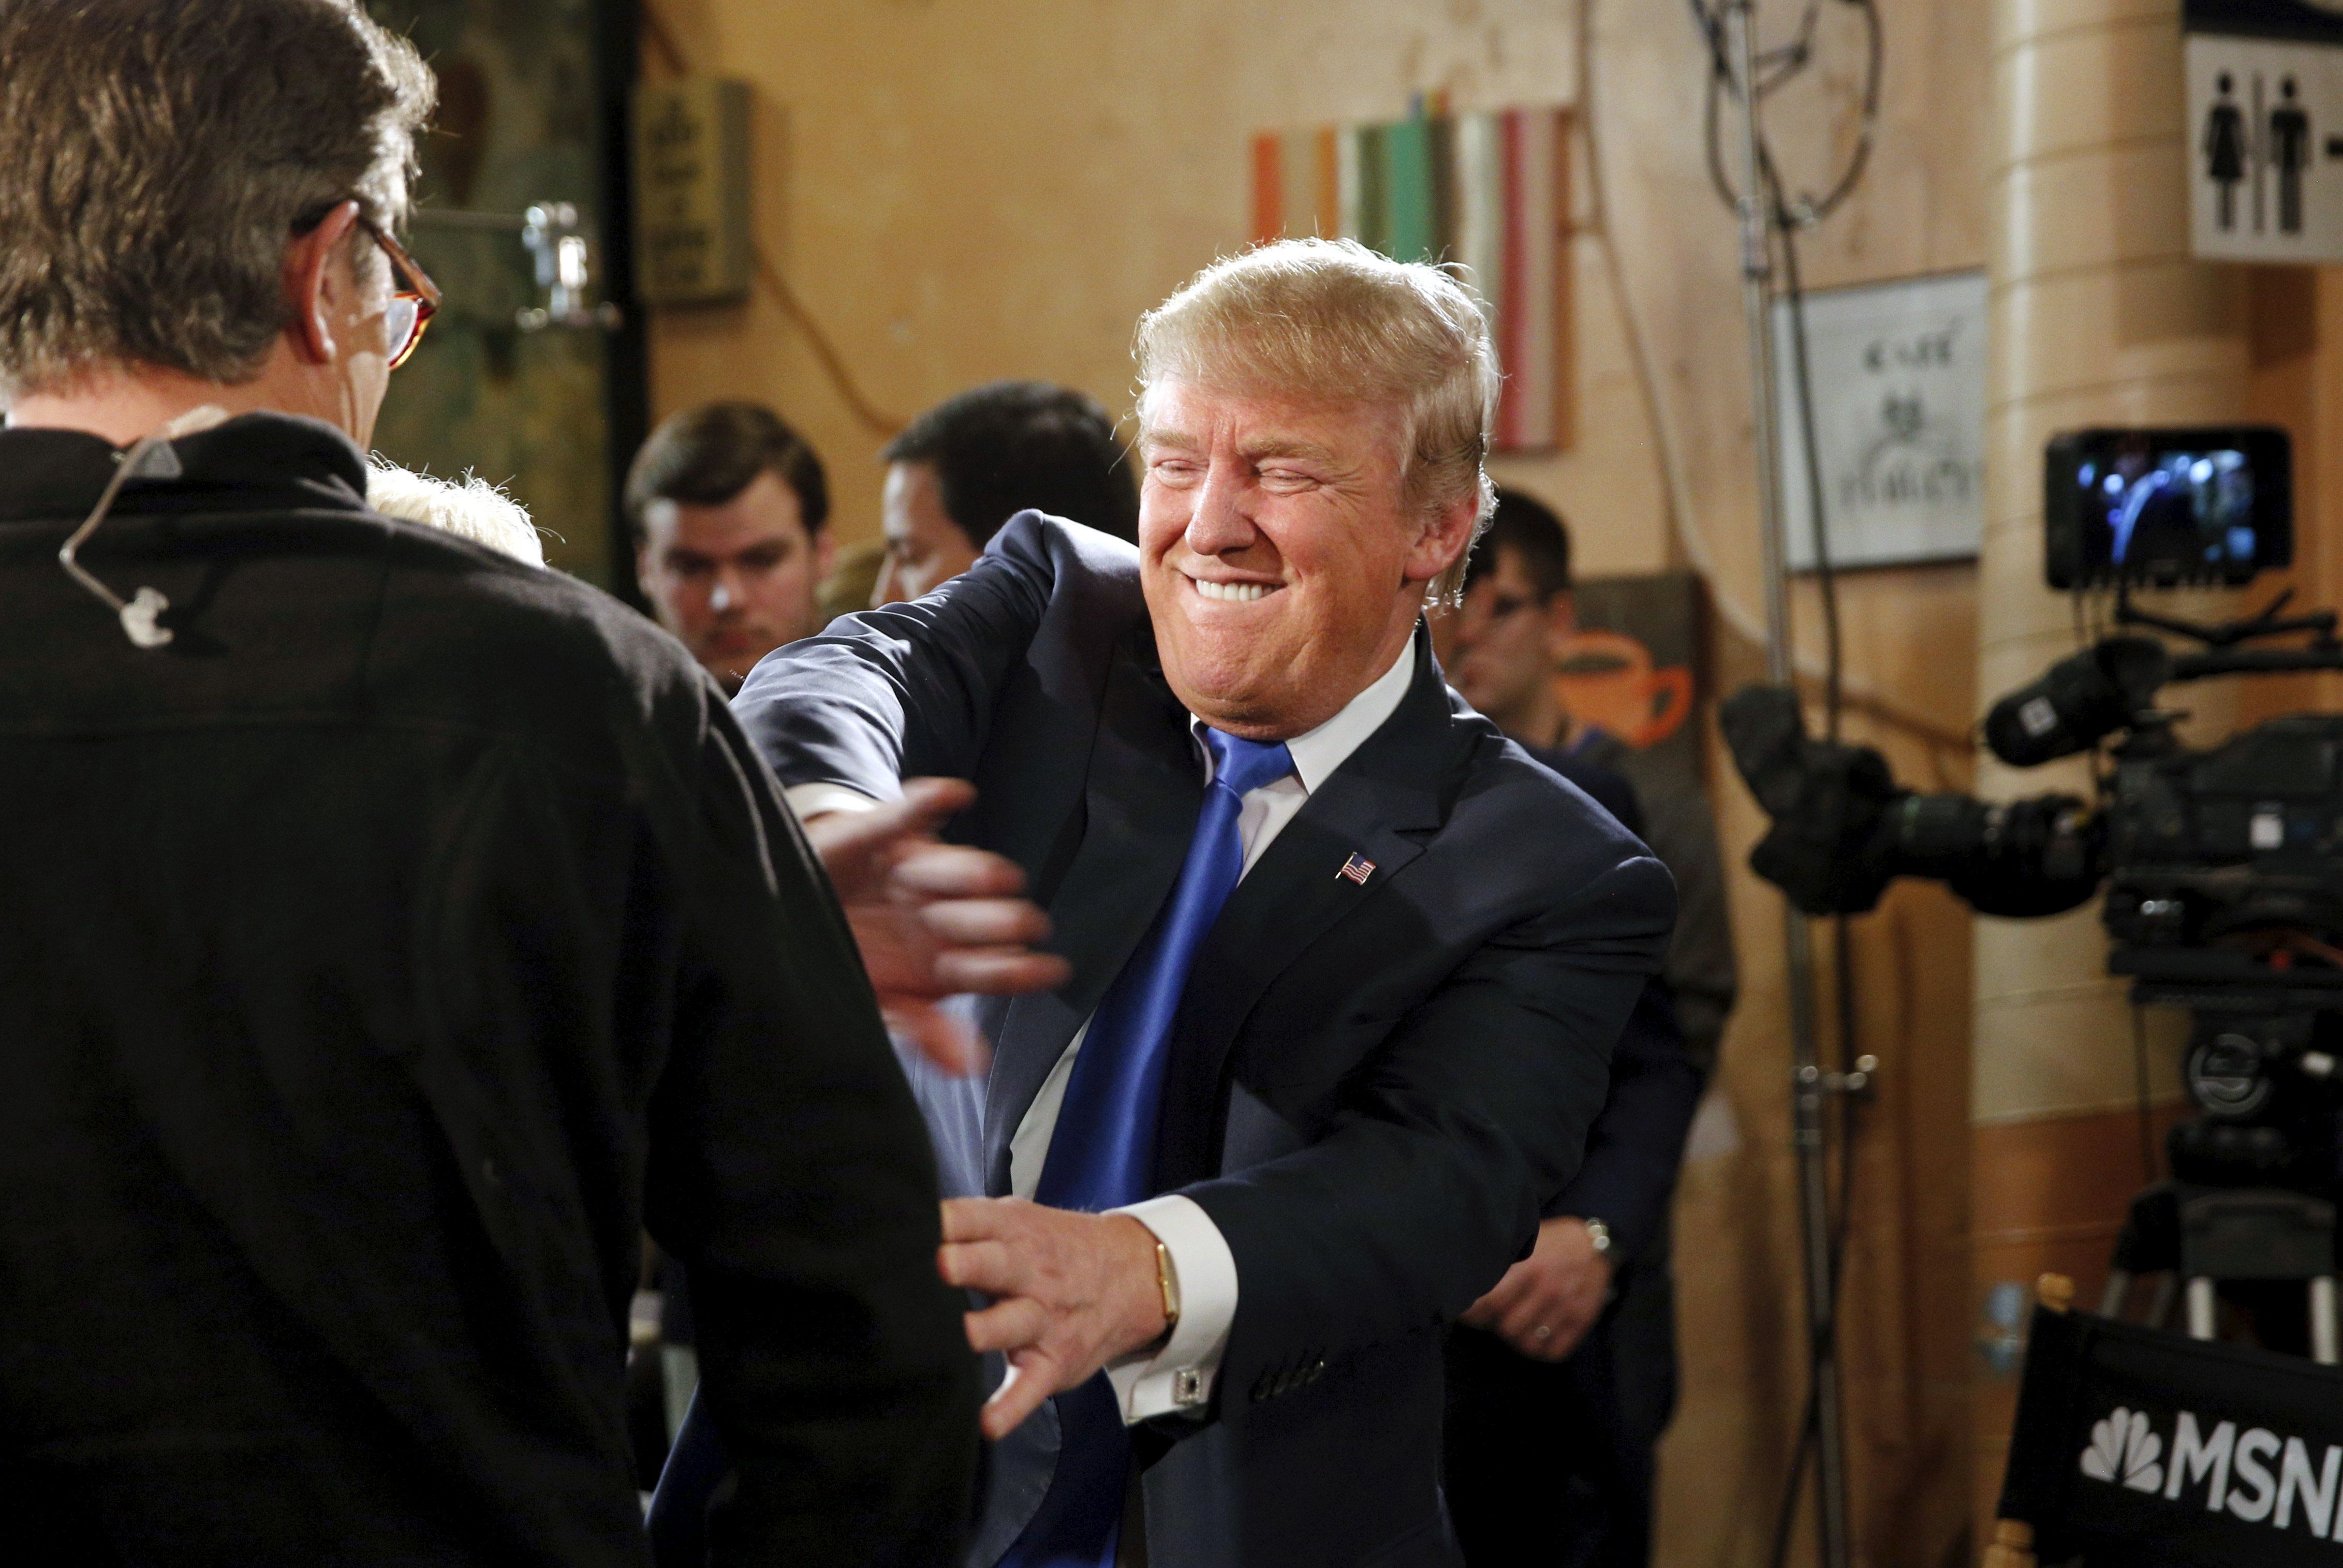 U.S. Republican presidential candidate Donald Trump jokes with host Joe Scarborough after an appearance on MSNBC's Morning Joe cable television show at Java Joe's CoffeeHouse in Des Moines, Iowa, January 15, 2016. REUTERS/Scott Morgan      TPX IMAGES OF THE DAY